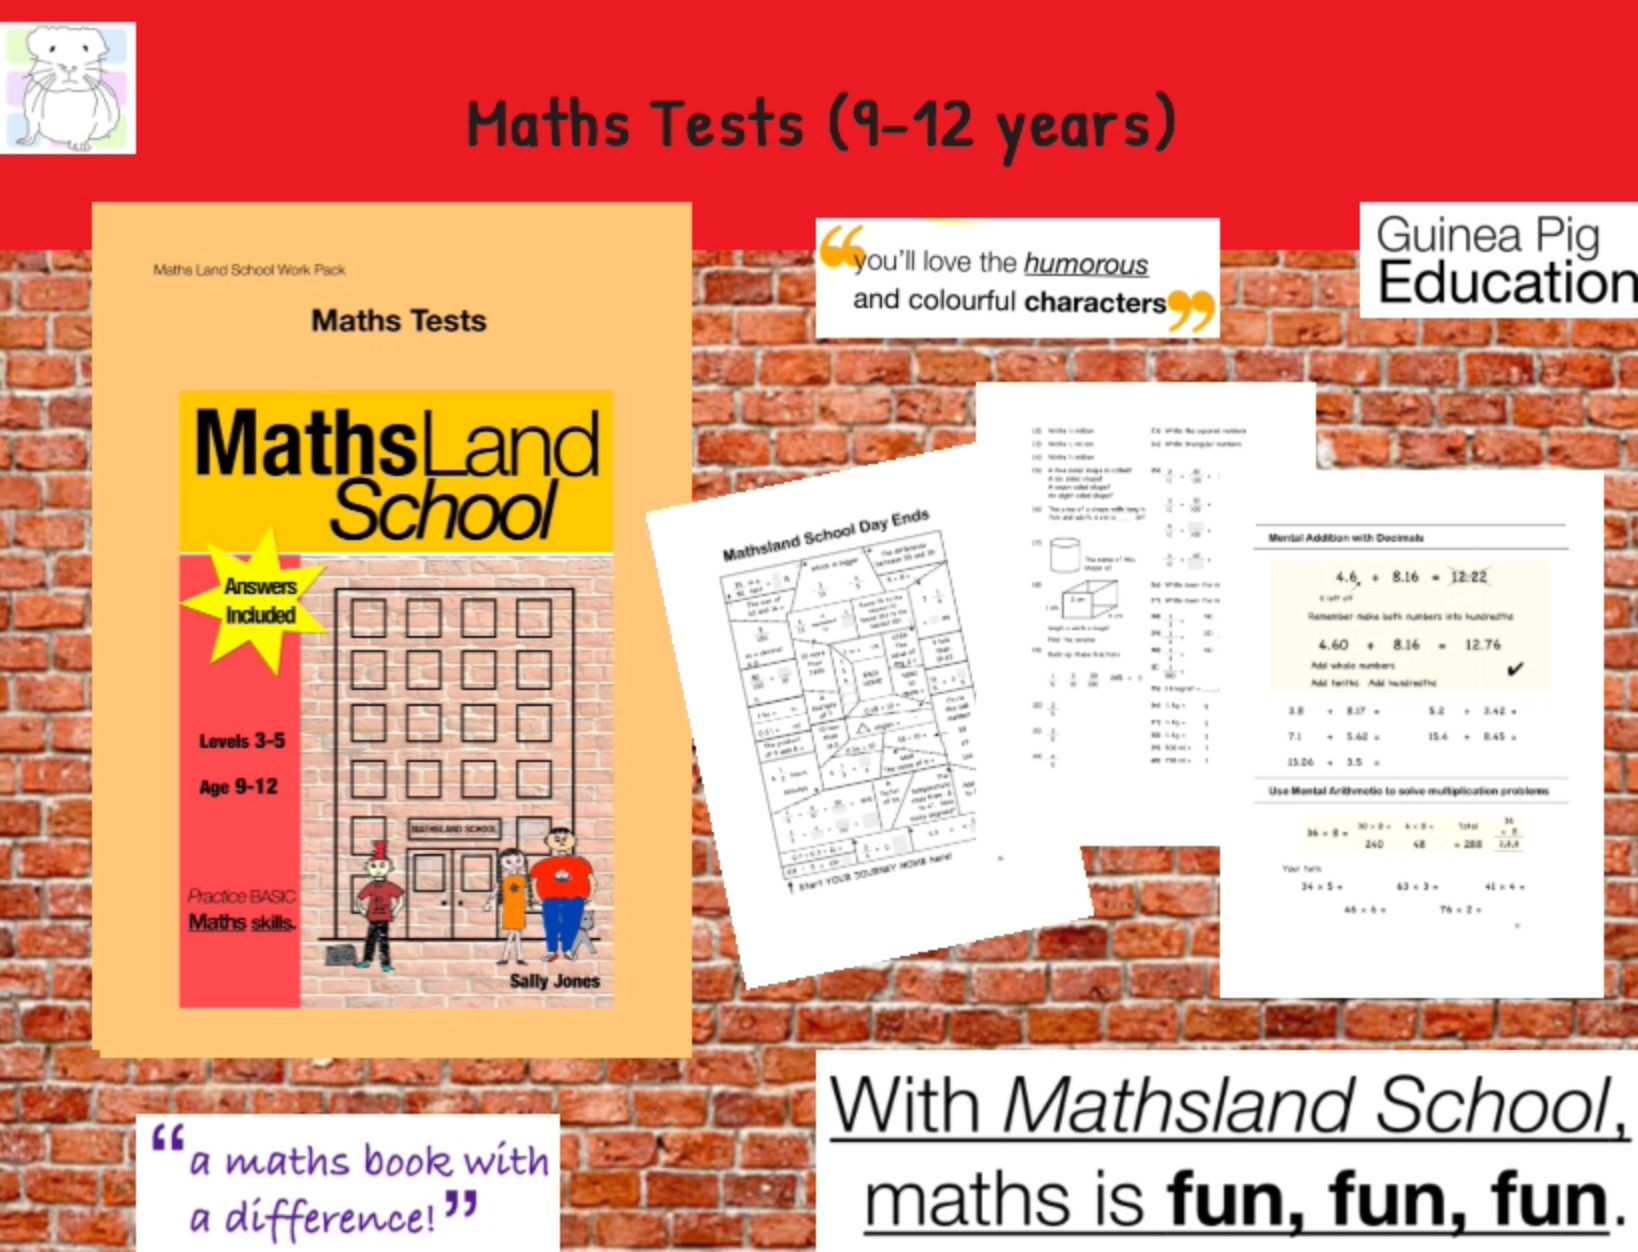 Maths Tests (9-12 years)